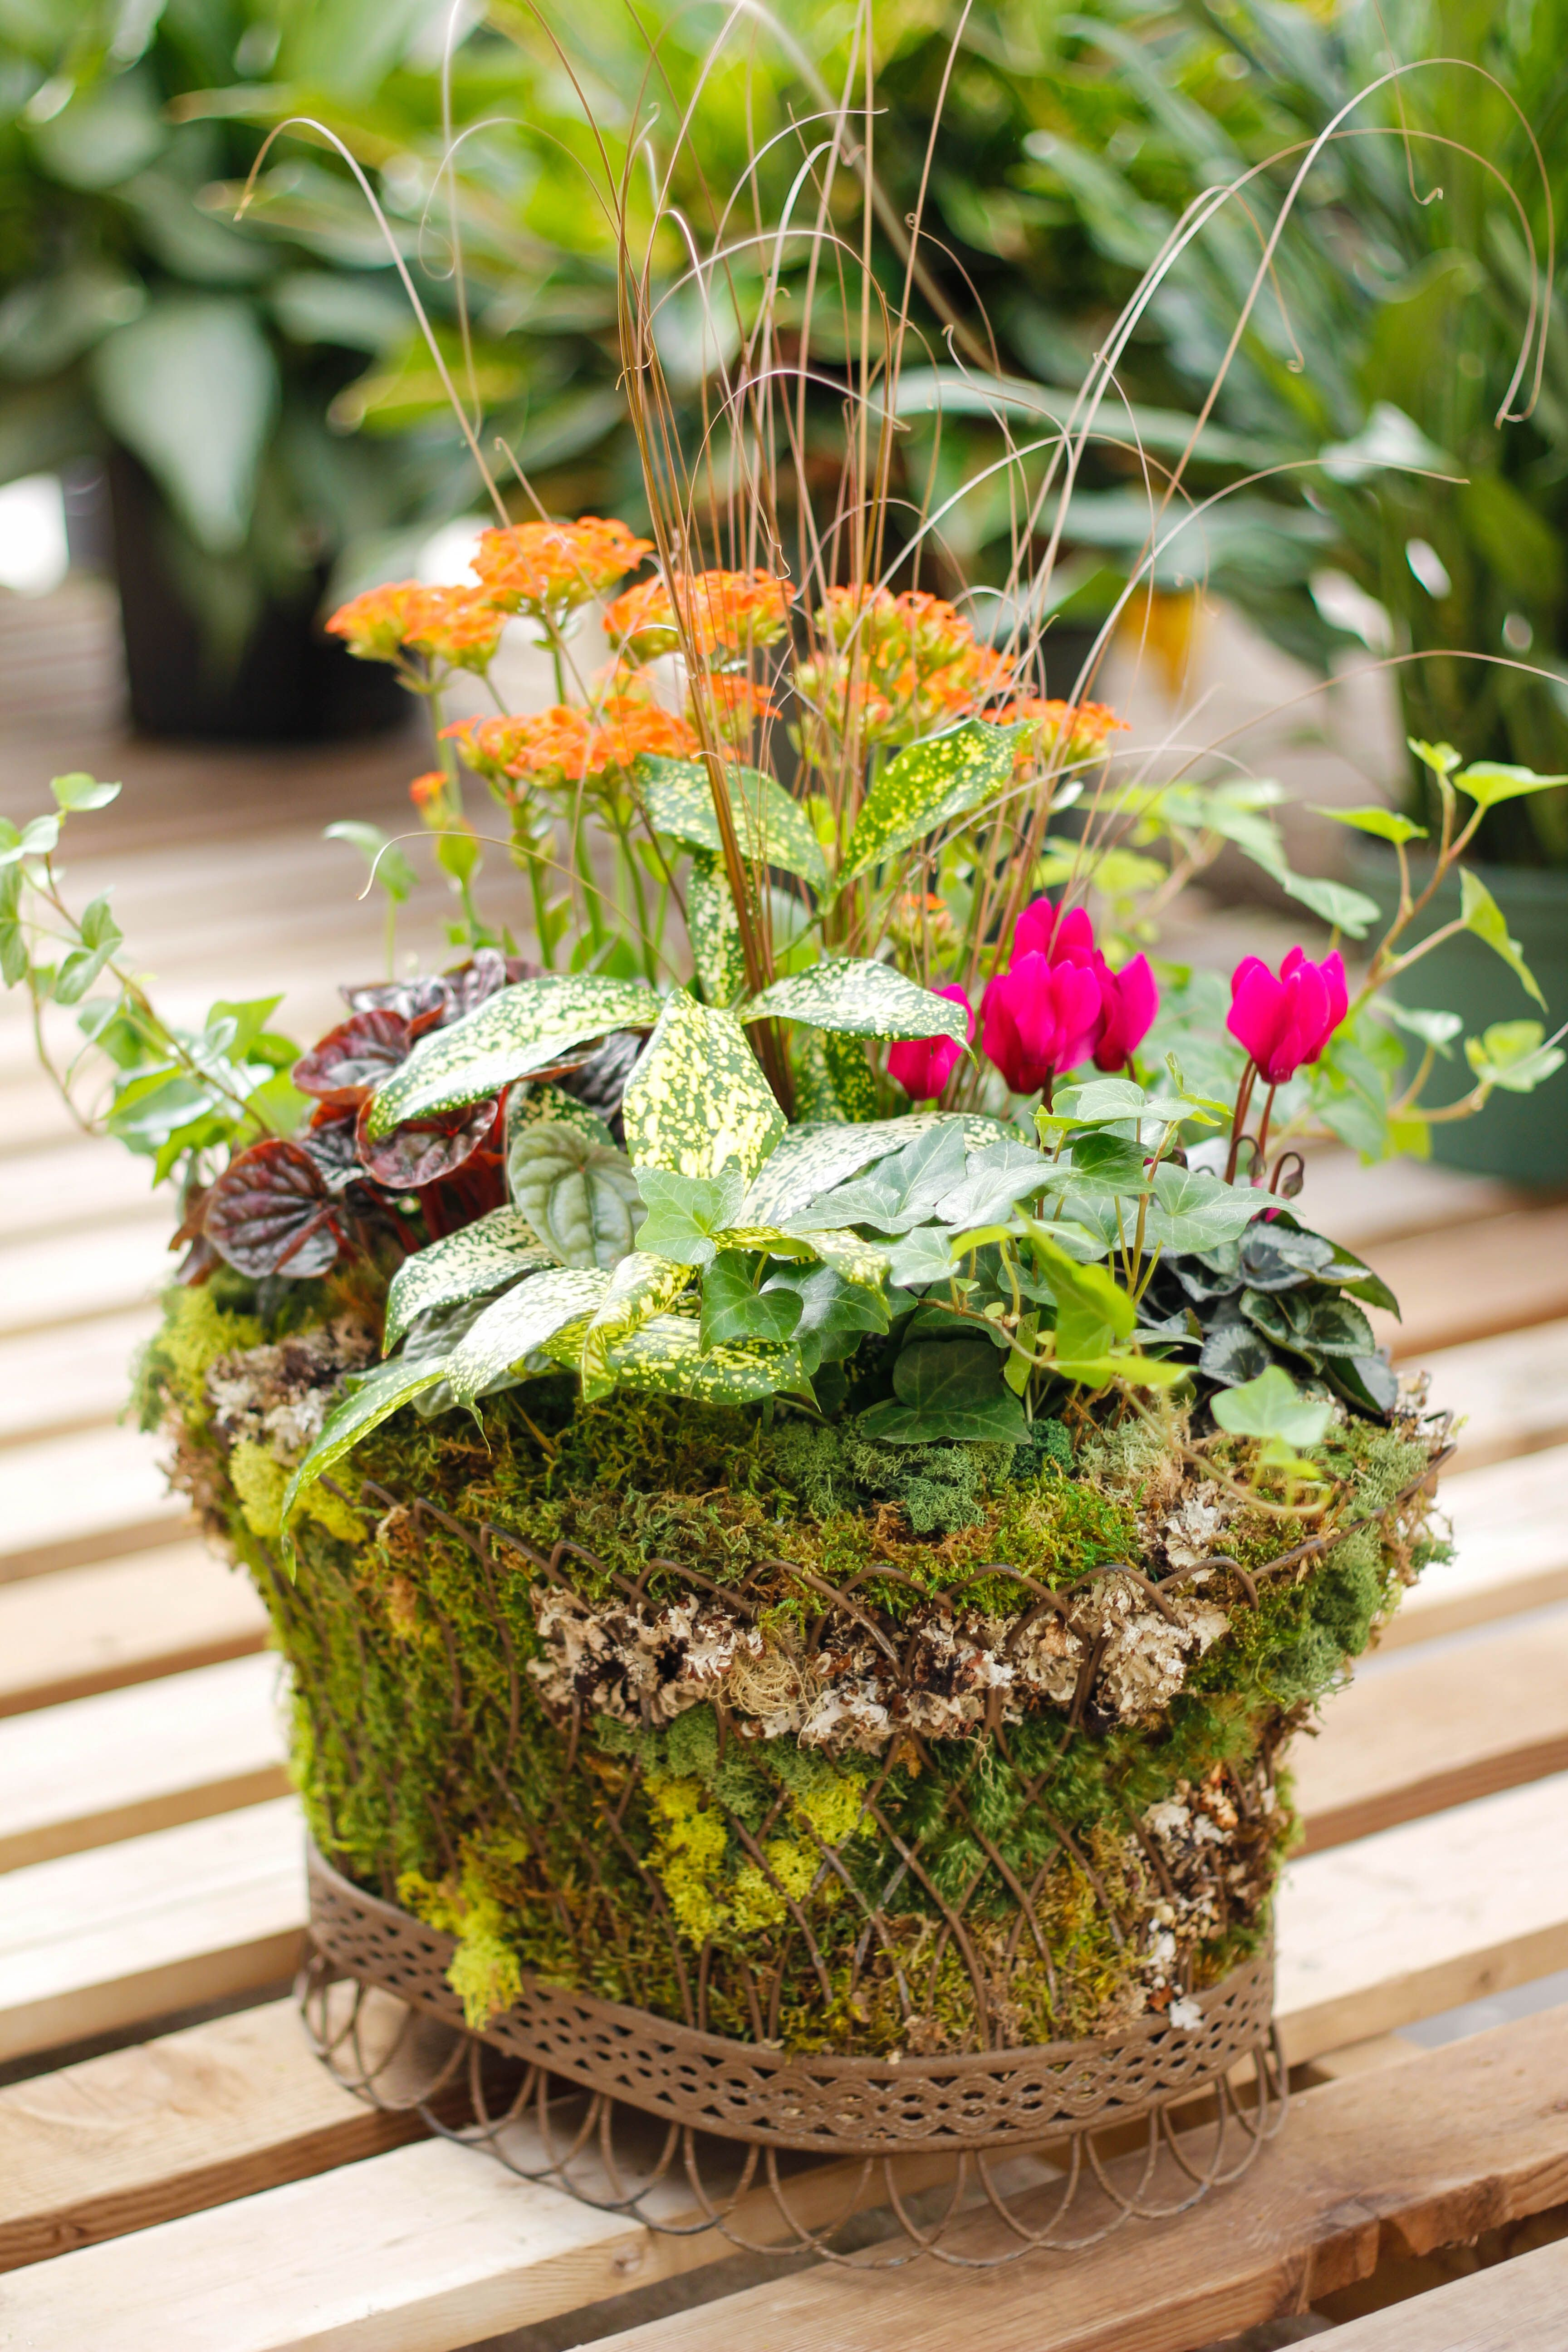 Dish Gardens Make Great Gifts Or Beautiful Decorations In Your Home.